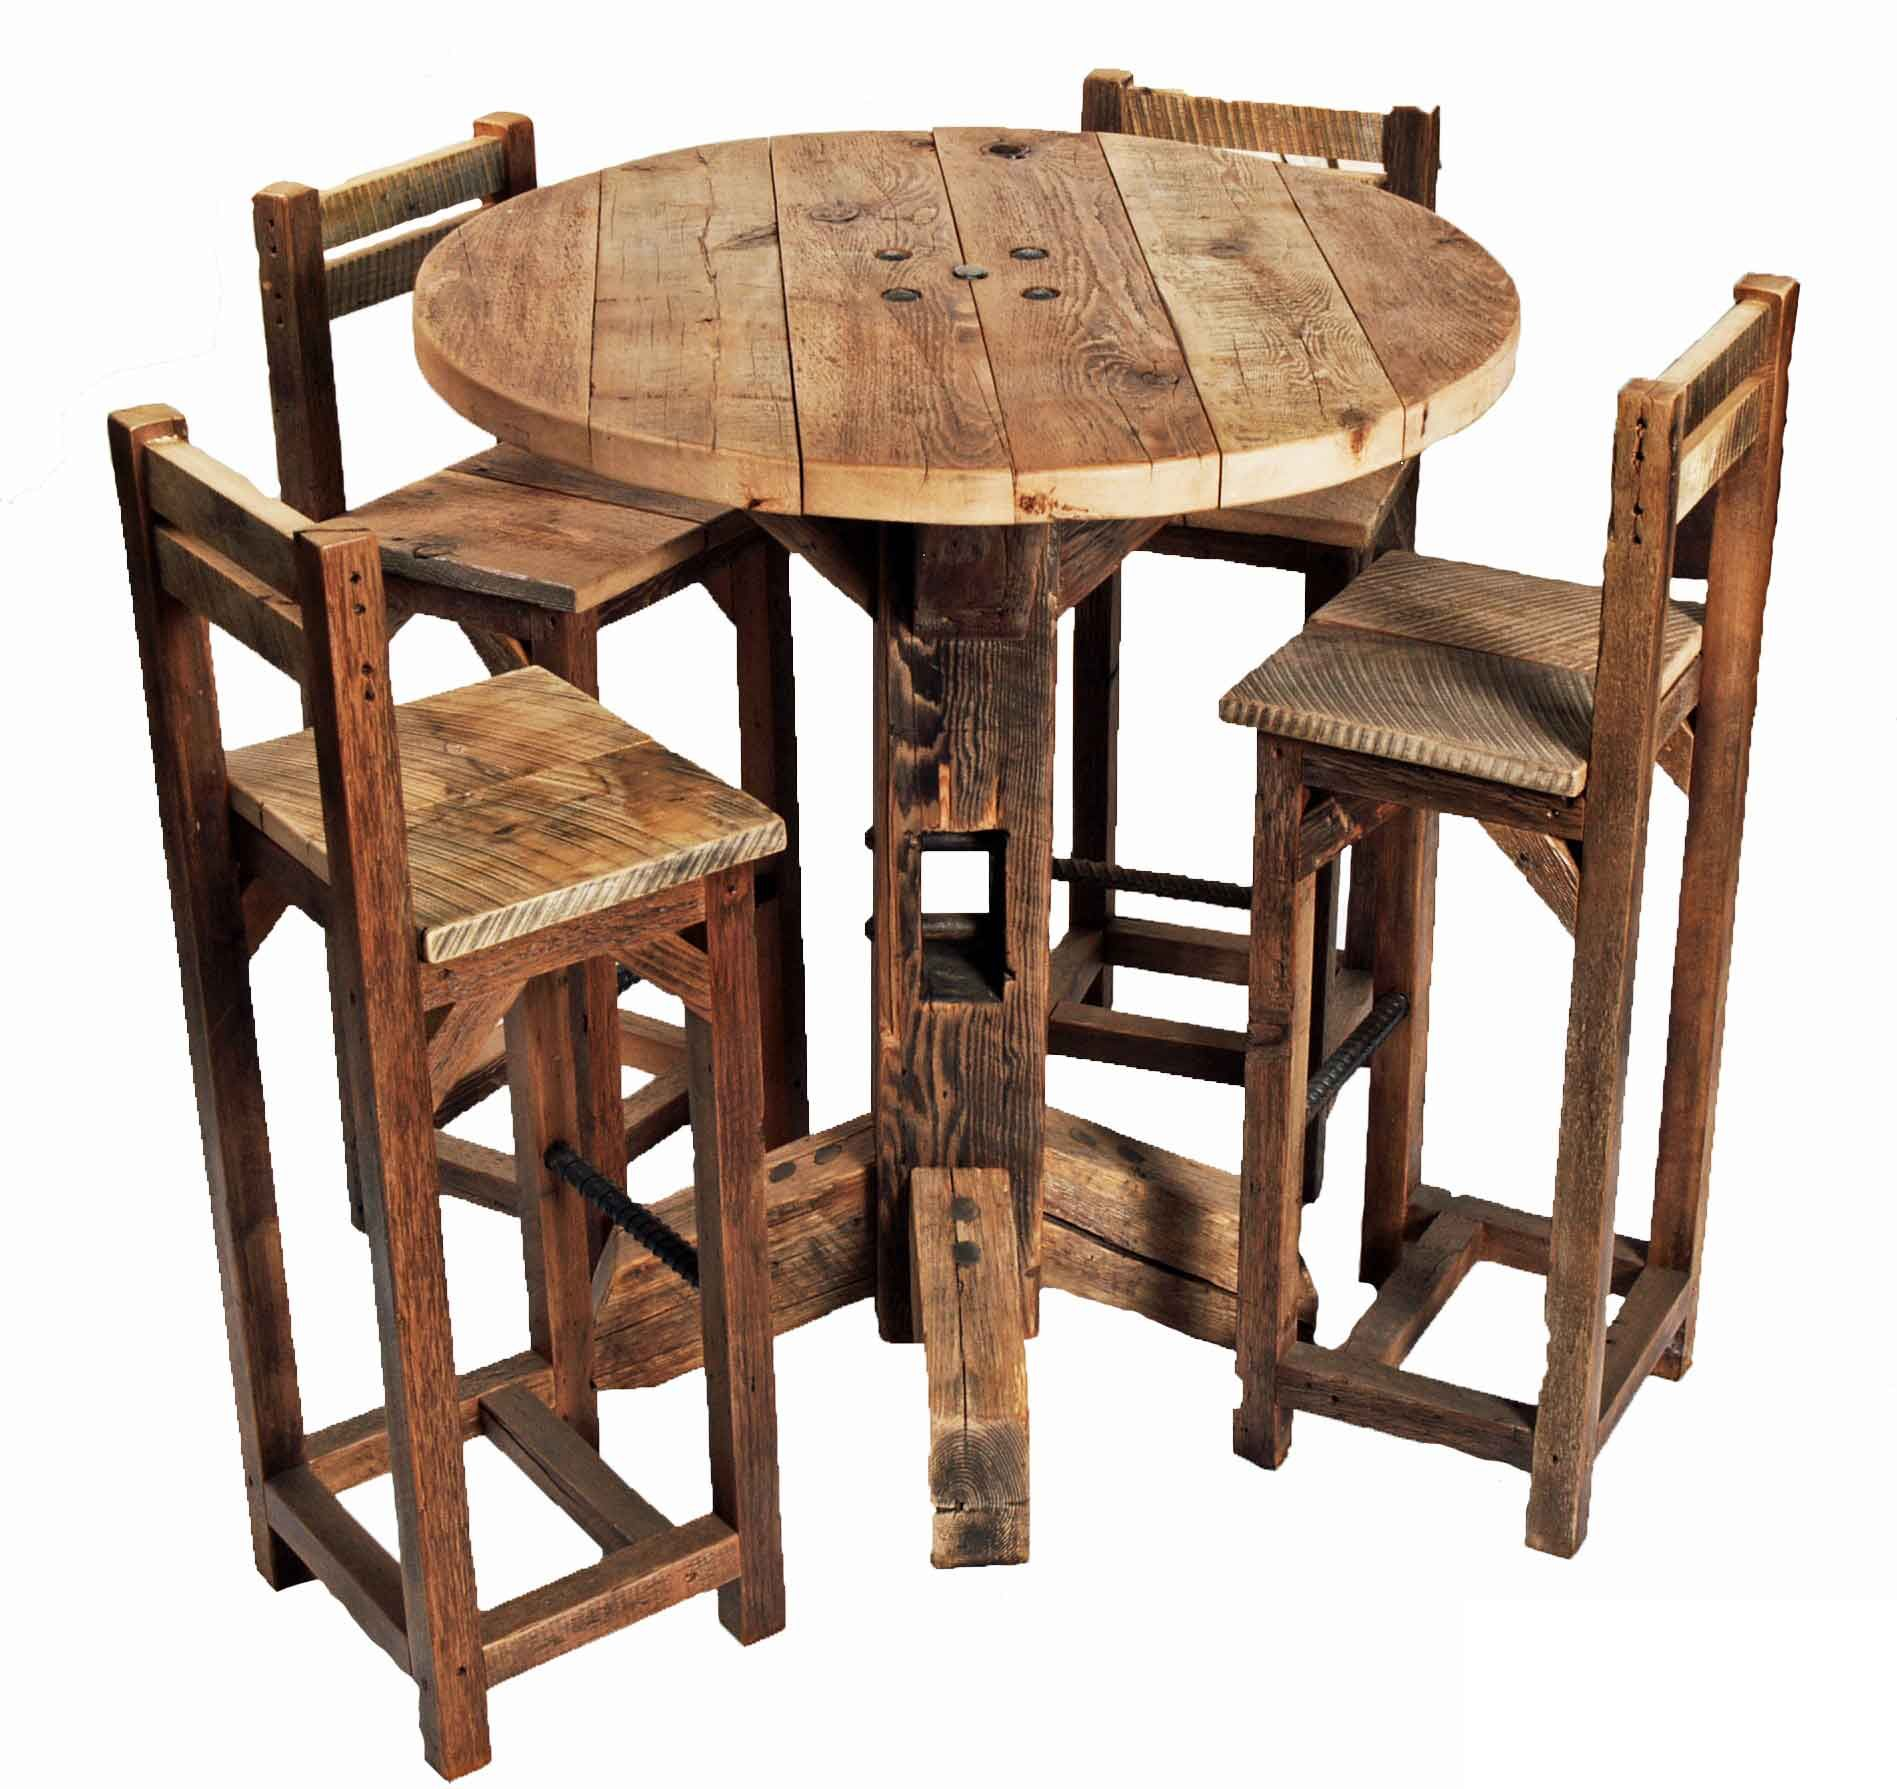 Furniture old rustic small high round top kitchen table for Small round wood kitchen table